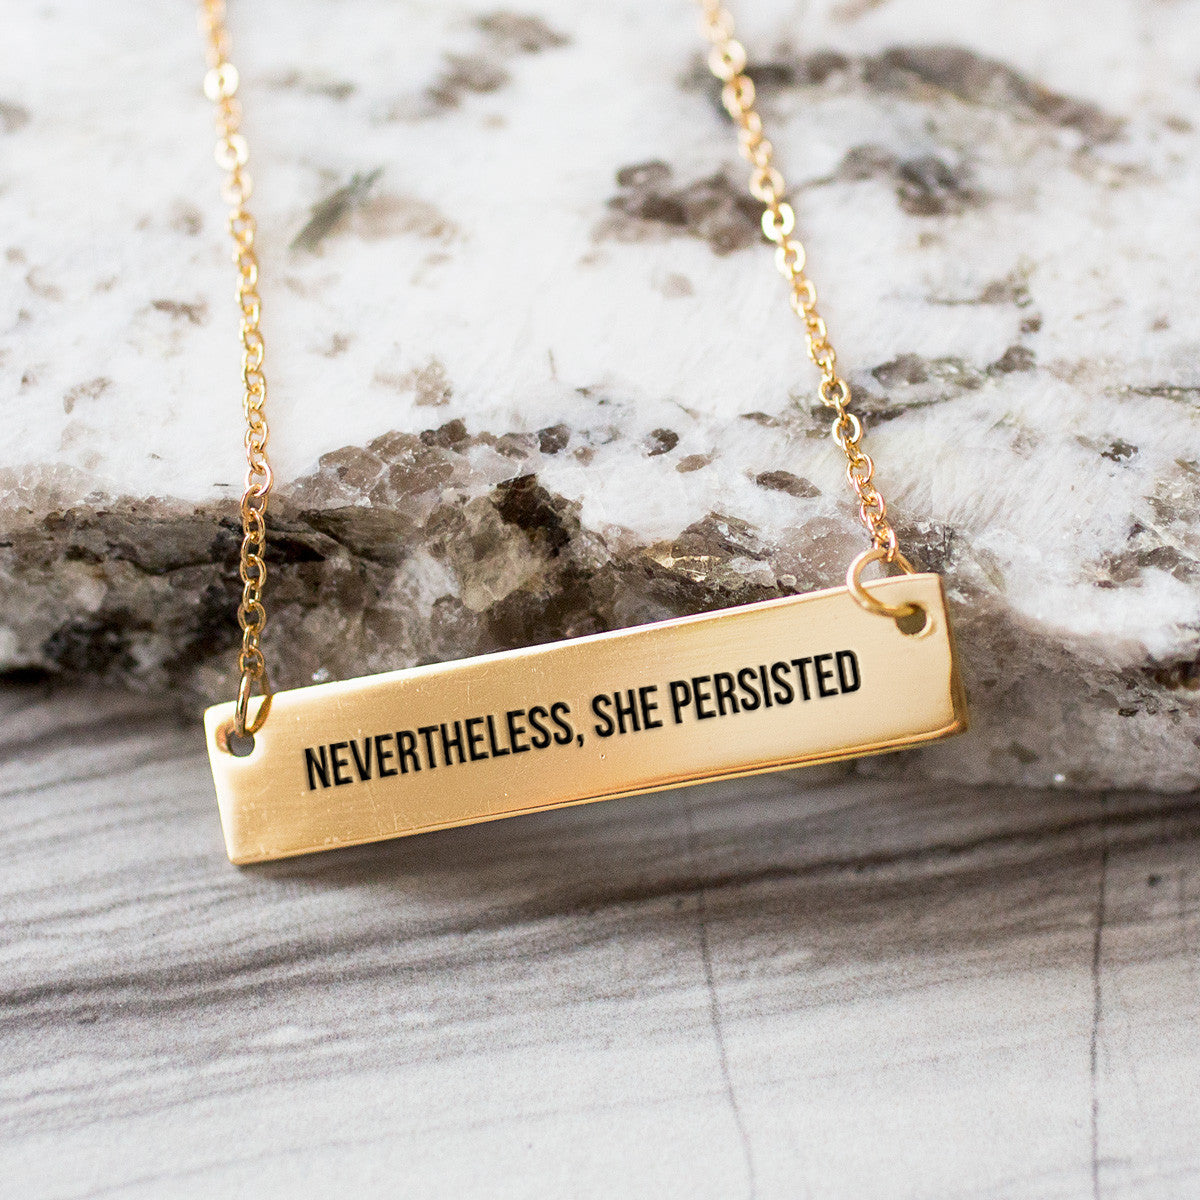 Nevertheless, She Persisted Gold Bar Necklace Special Offer - pipercleo.com